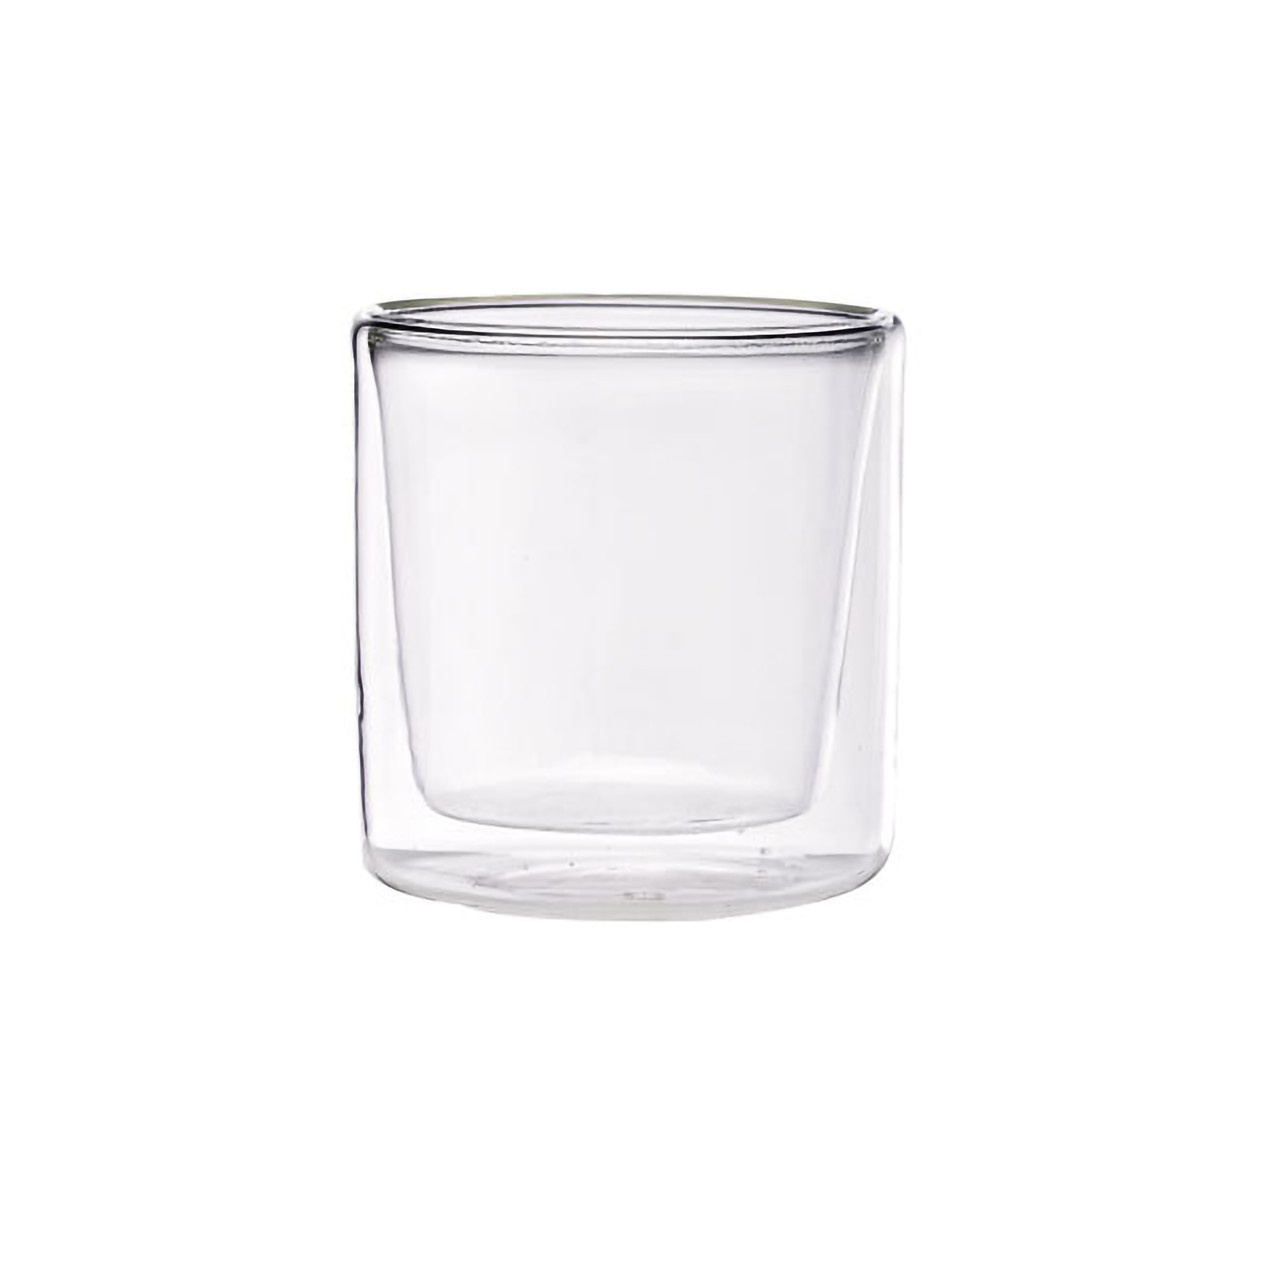 Double Wall Short Mini Glass -2oz Dia:2.2in H:2.3in